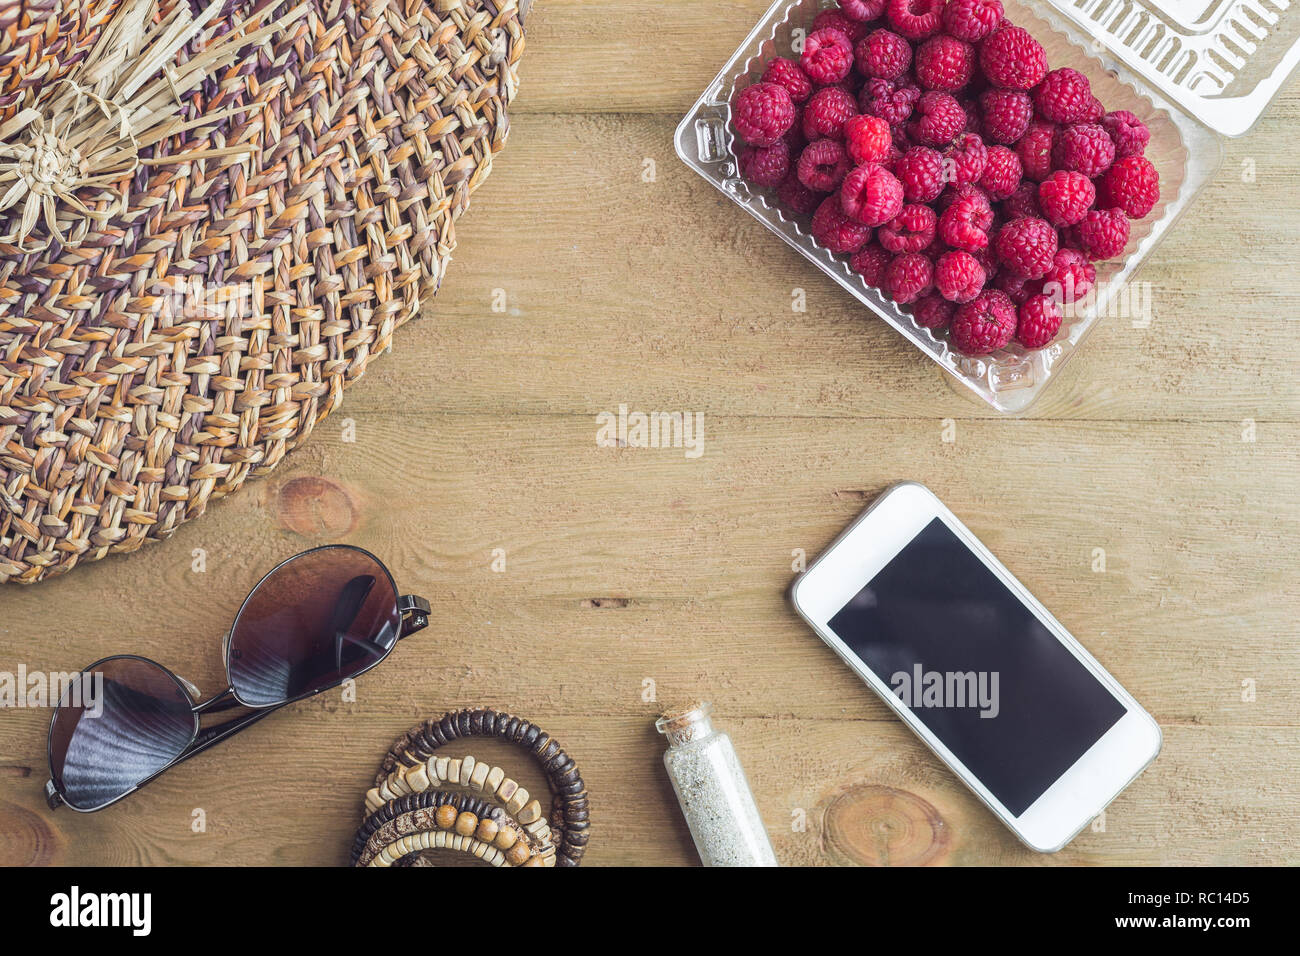 Summer holiday, vacation, relaxation concept. Raspberries, straw hat, smartphone, sunglasses from above, top view, flat lay on wooden background. Free text copy space. Summer vibes concept. Stock Photo